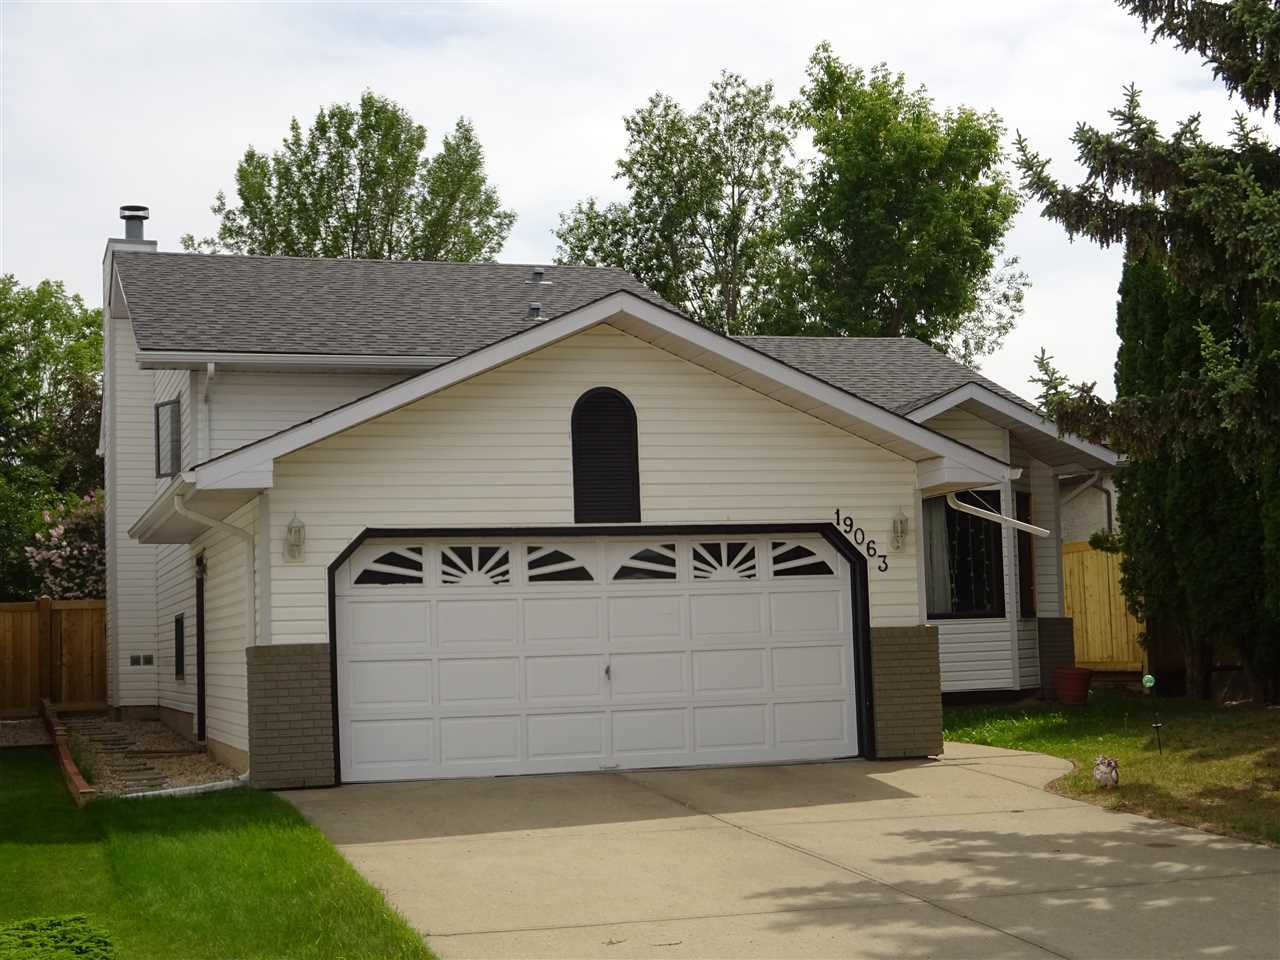 Main Photo: 19063 71  Ave in Edmonton: Zone 20 House for sale : MLS®# E4166327